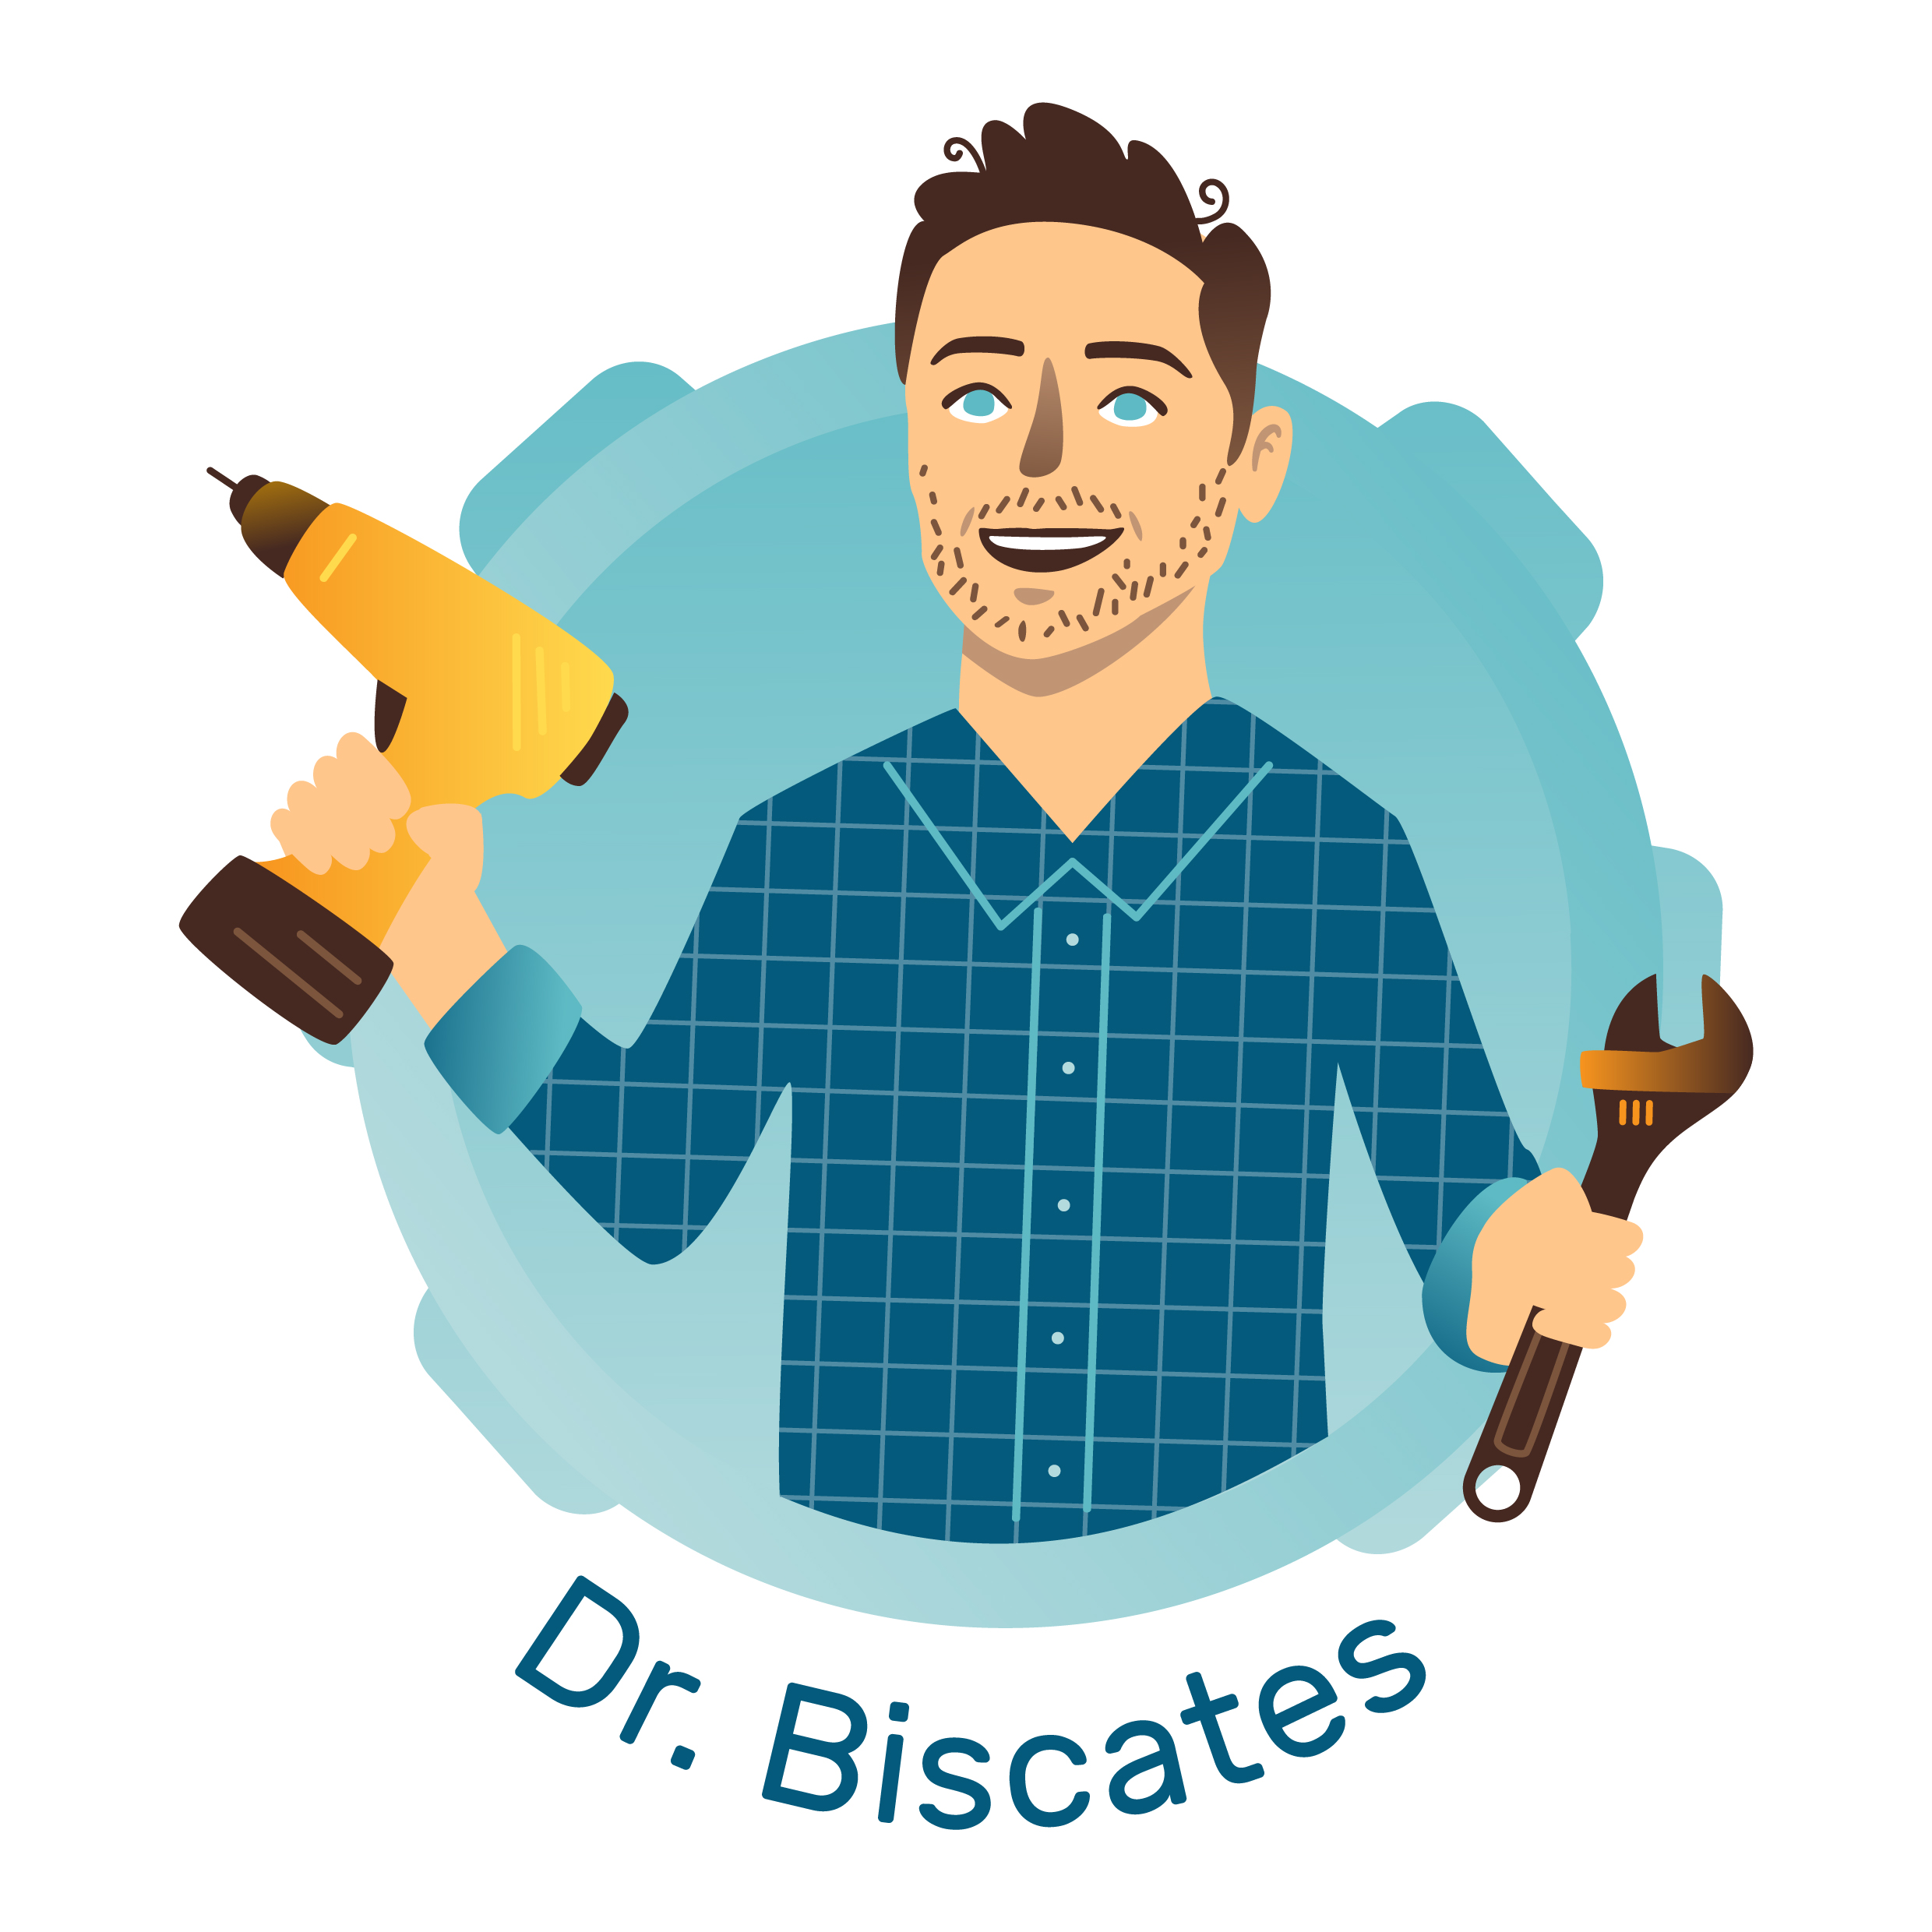 Dr. Biscates